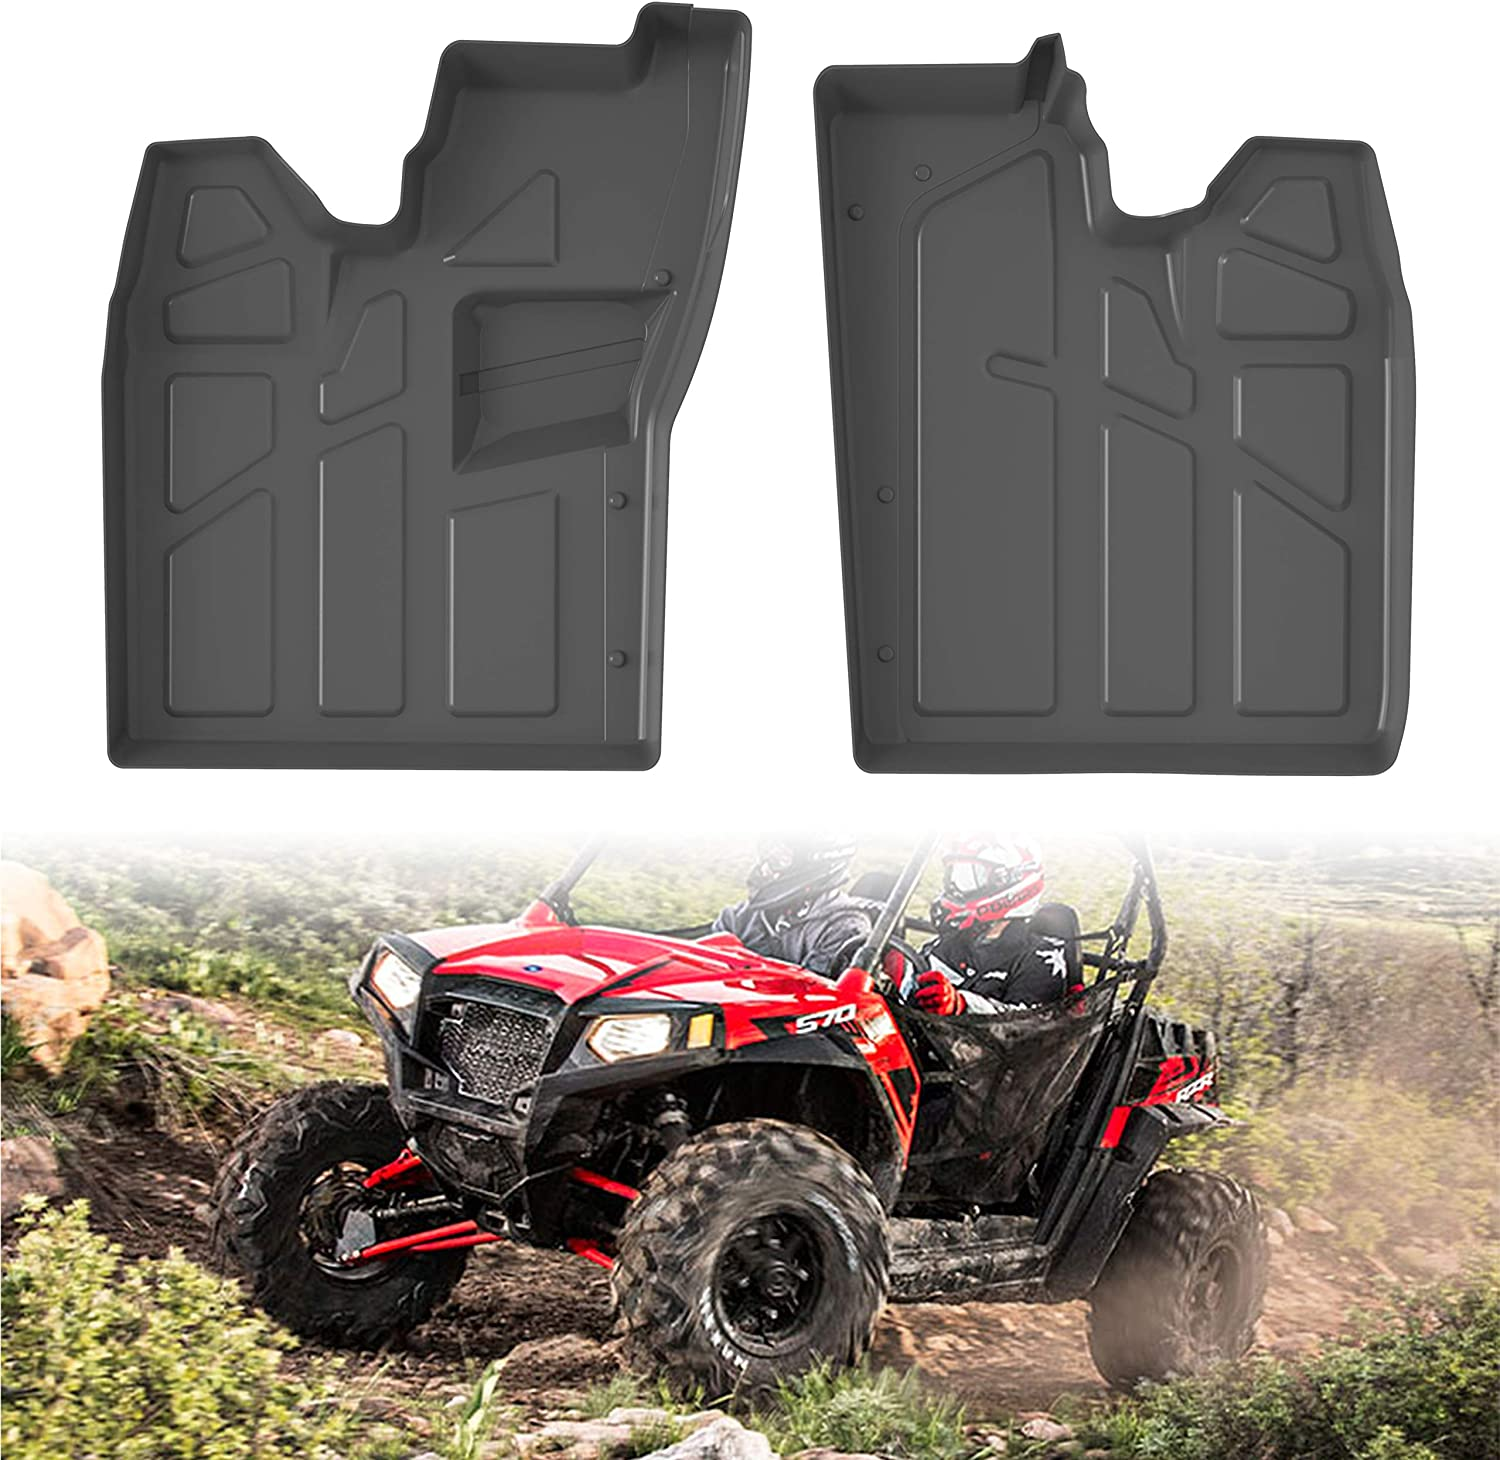 Front Row Floor Liners All Weather Protection Slush Mats for Polaris RZR 570 800 900 2008-2015 Accessories SAUTVS RZR TPE Floor Mats